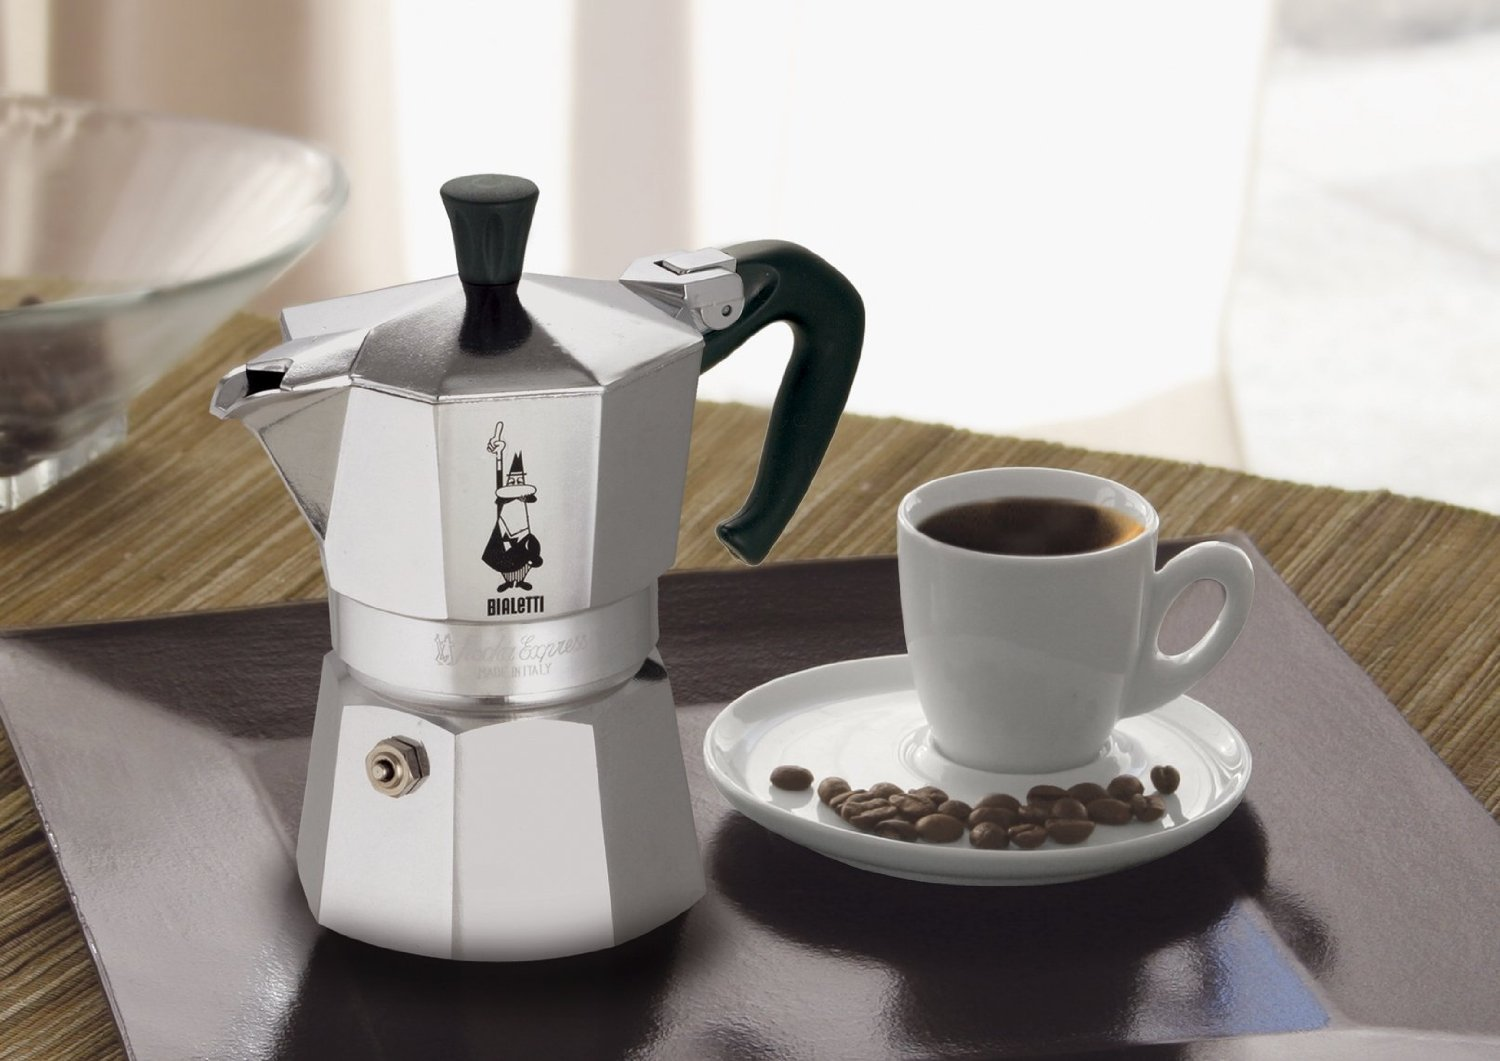 Bialetti Moka Express Stovetop Espresso Maker and Filter (3-Cup)